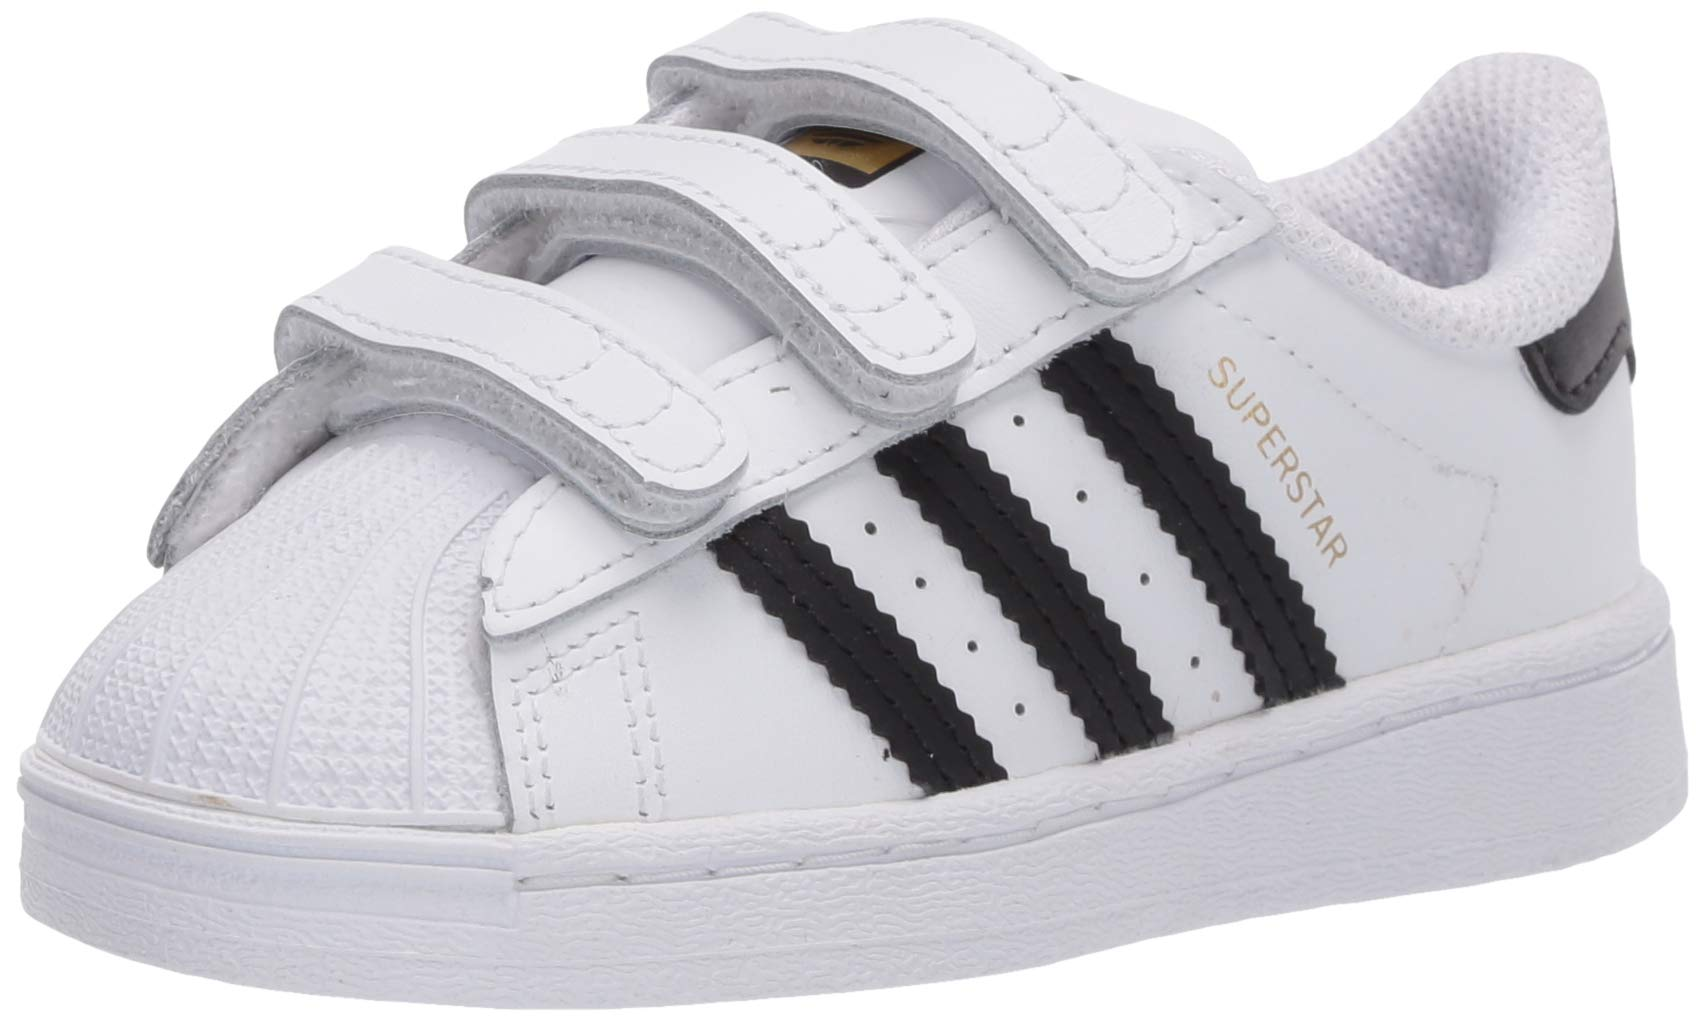 adidas superstar colombia